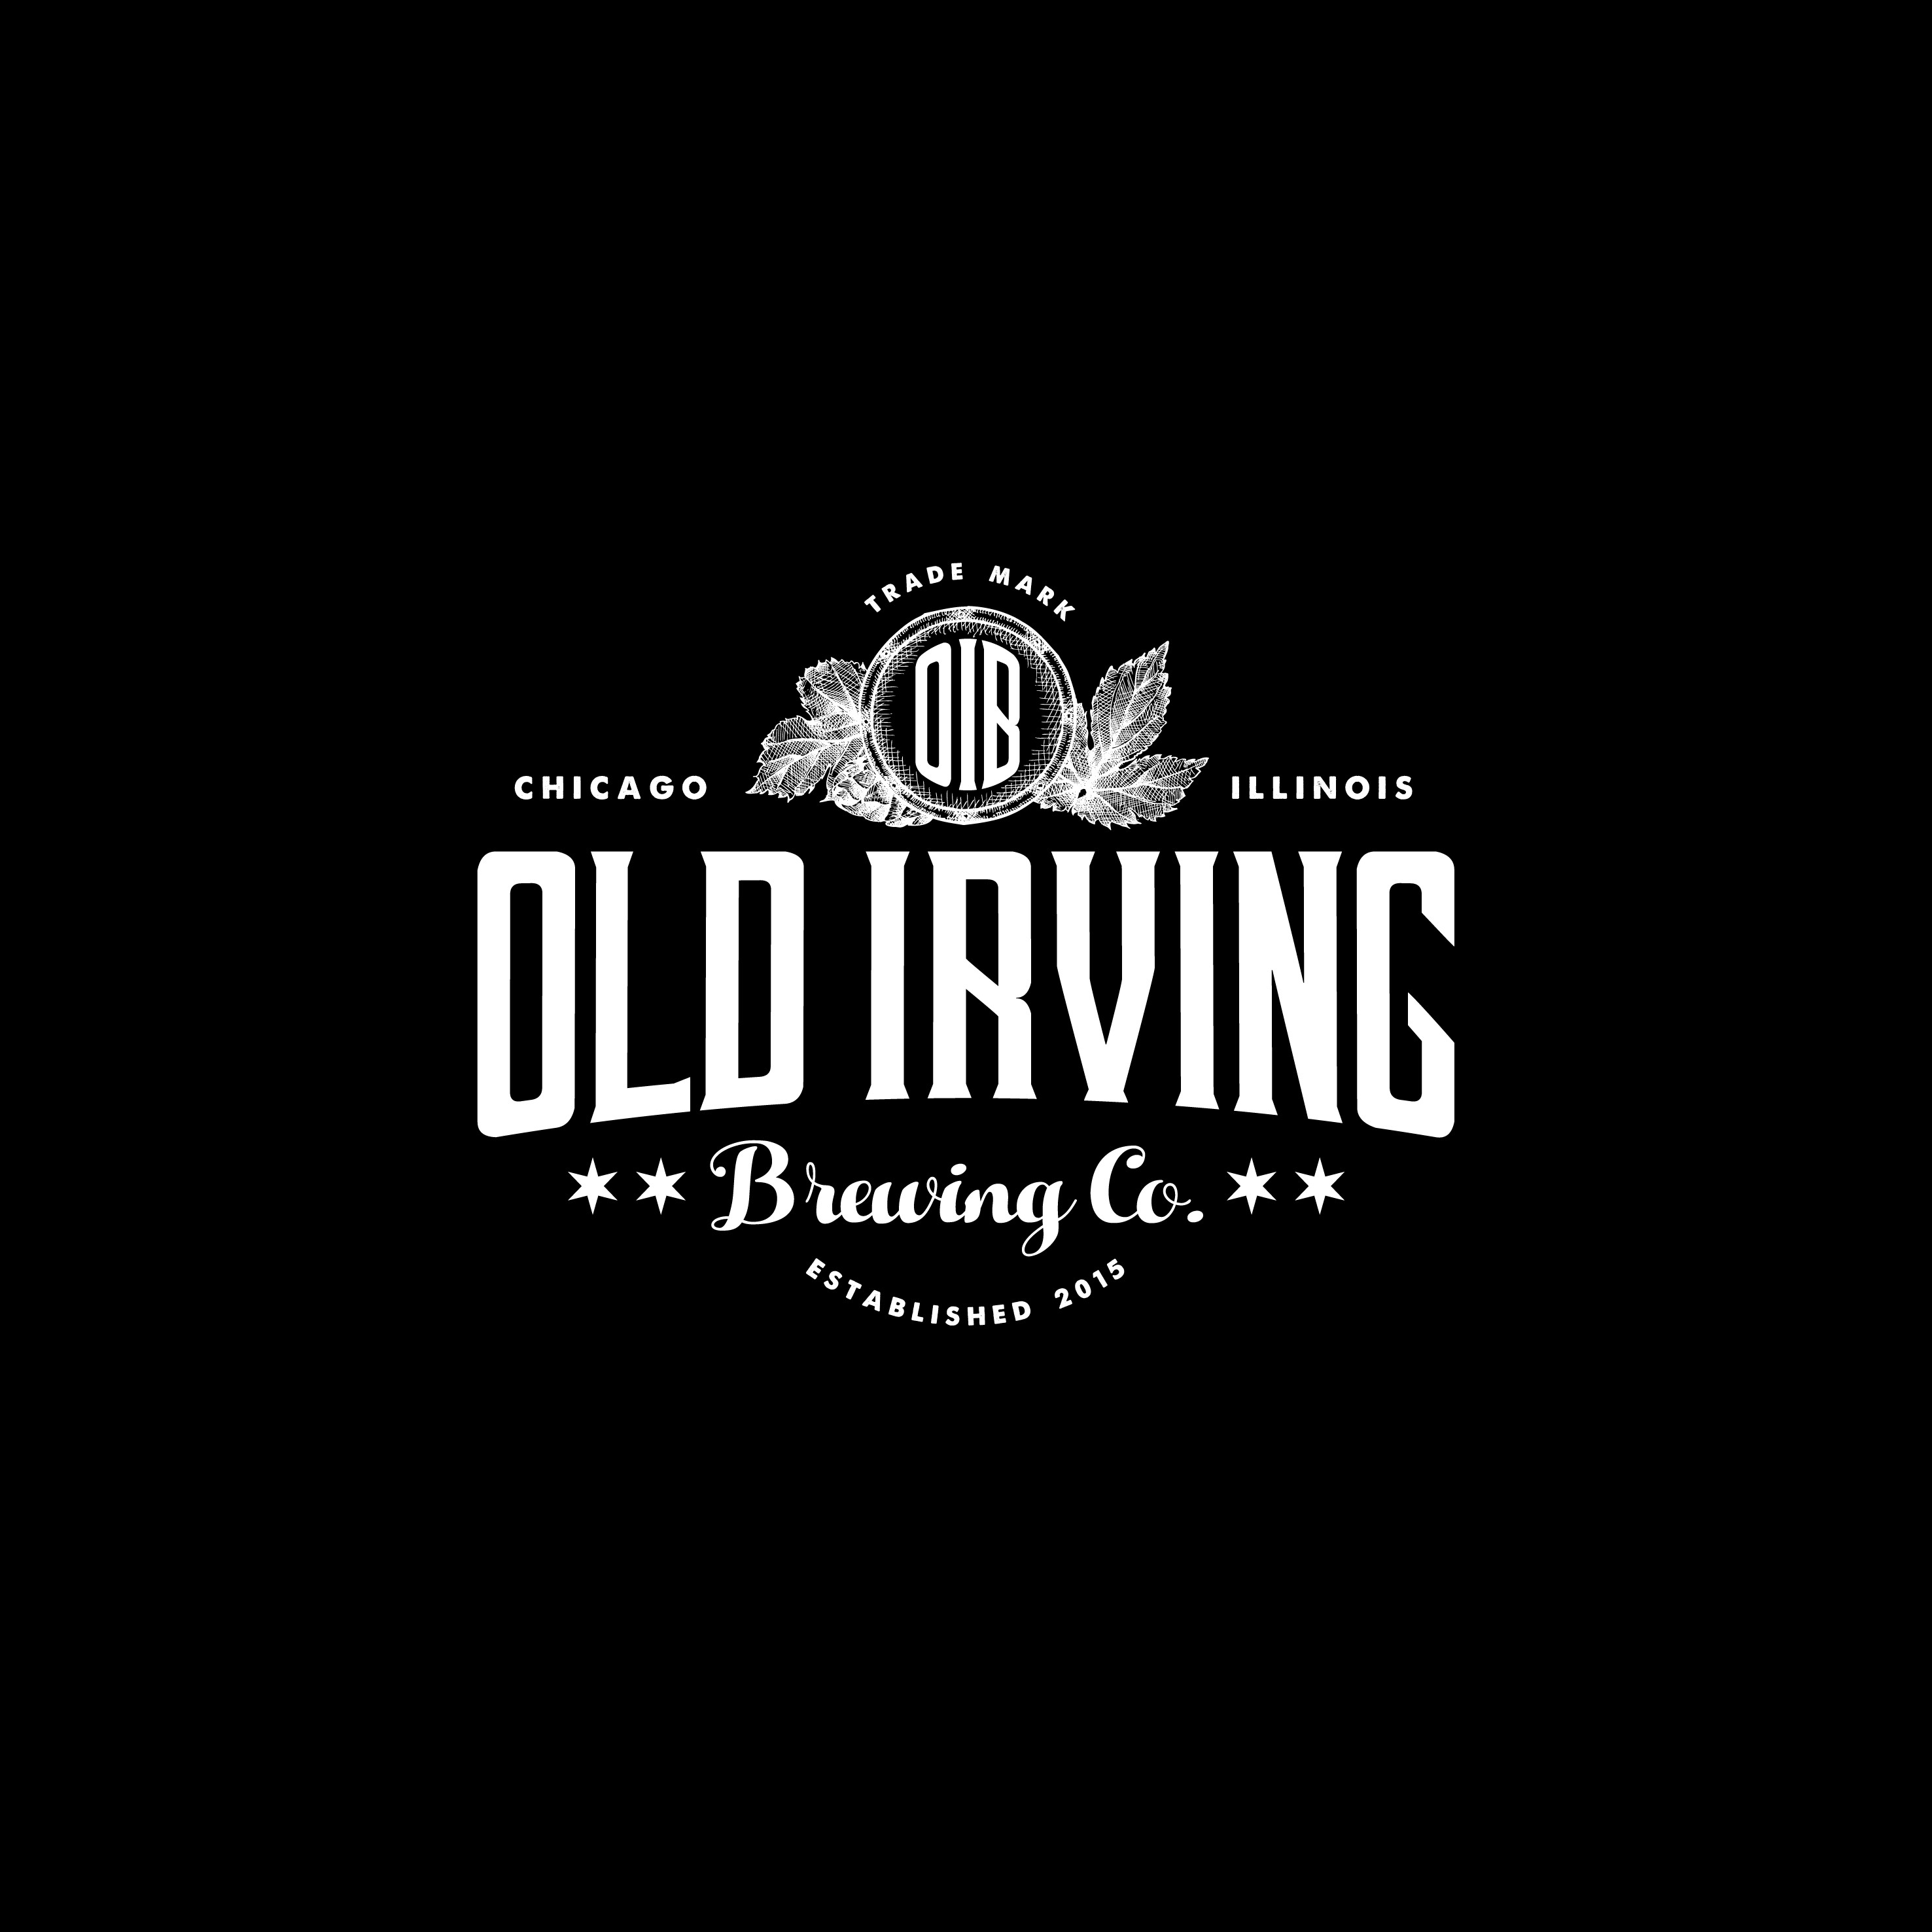 Logo for Old Irving Brewing Co.